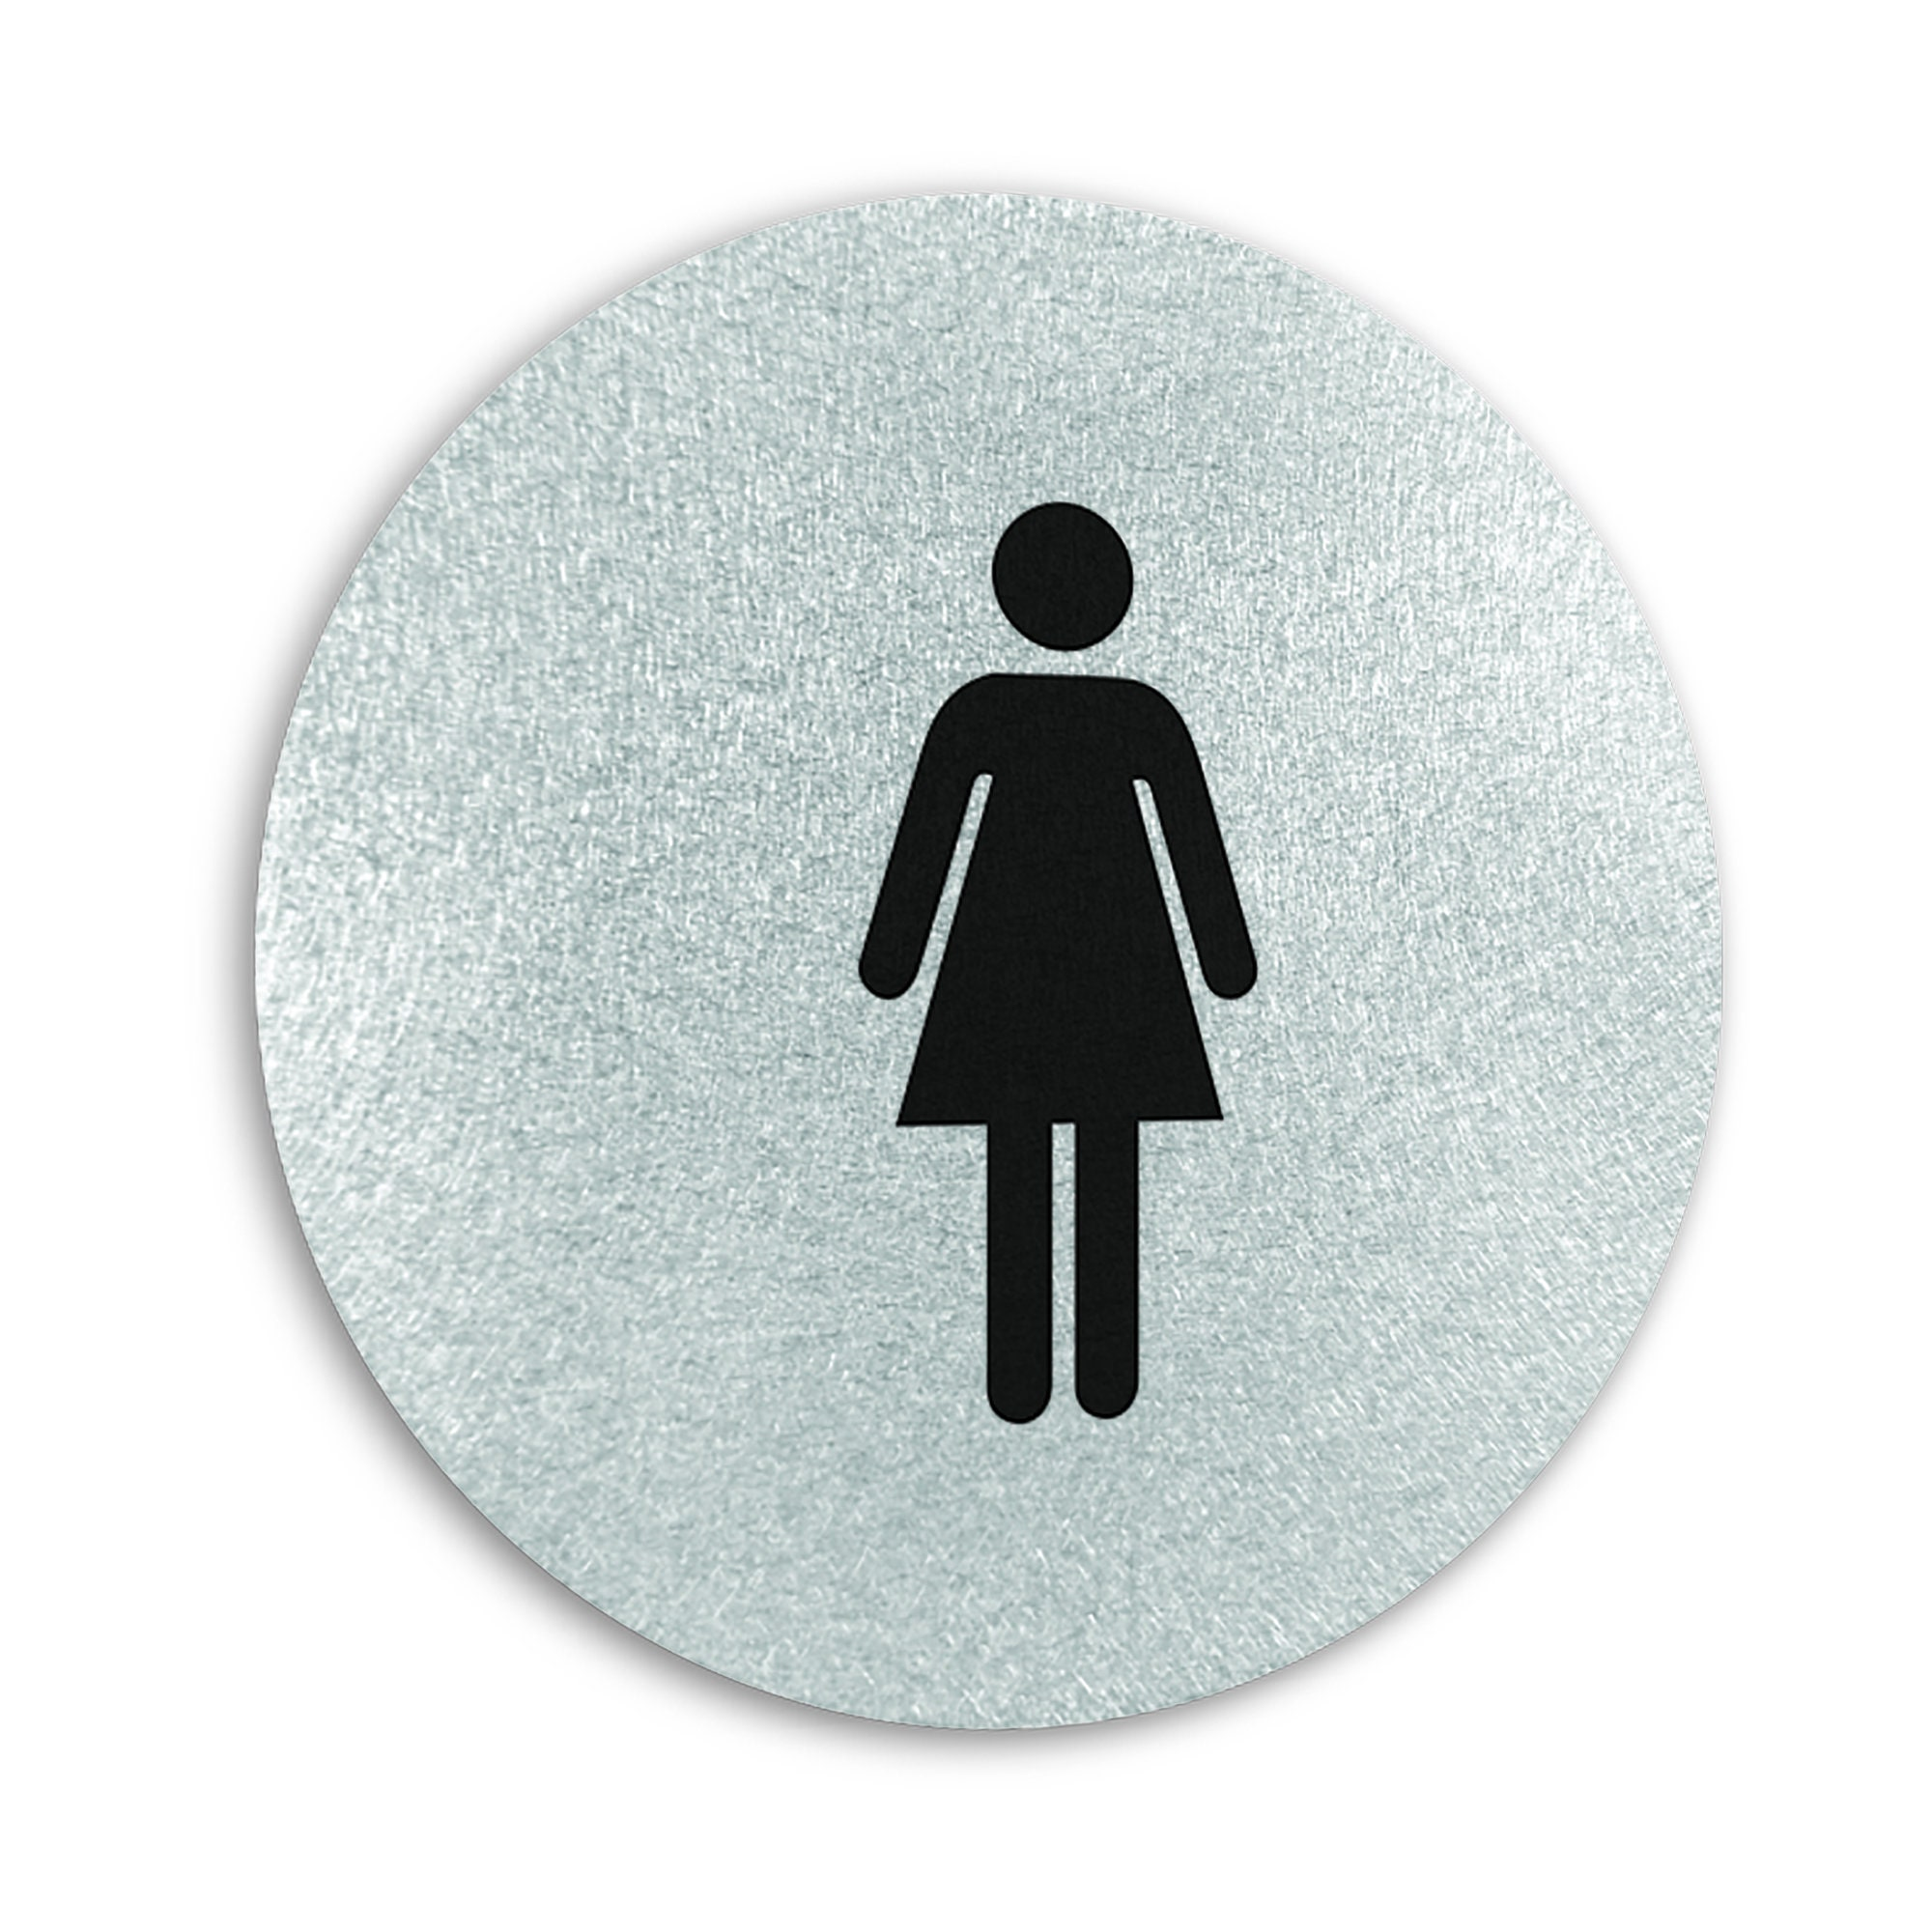 Modern WOMEN/'S Restroom Fitting Room SIGN Contemporary Aluminum Metal In//Outdoor